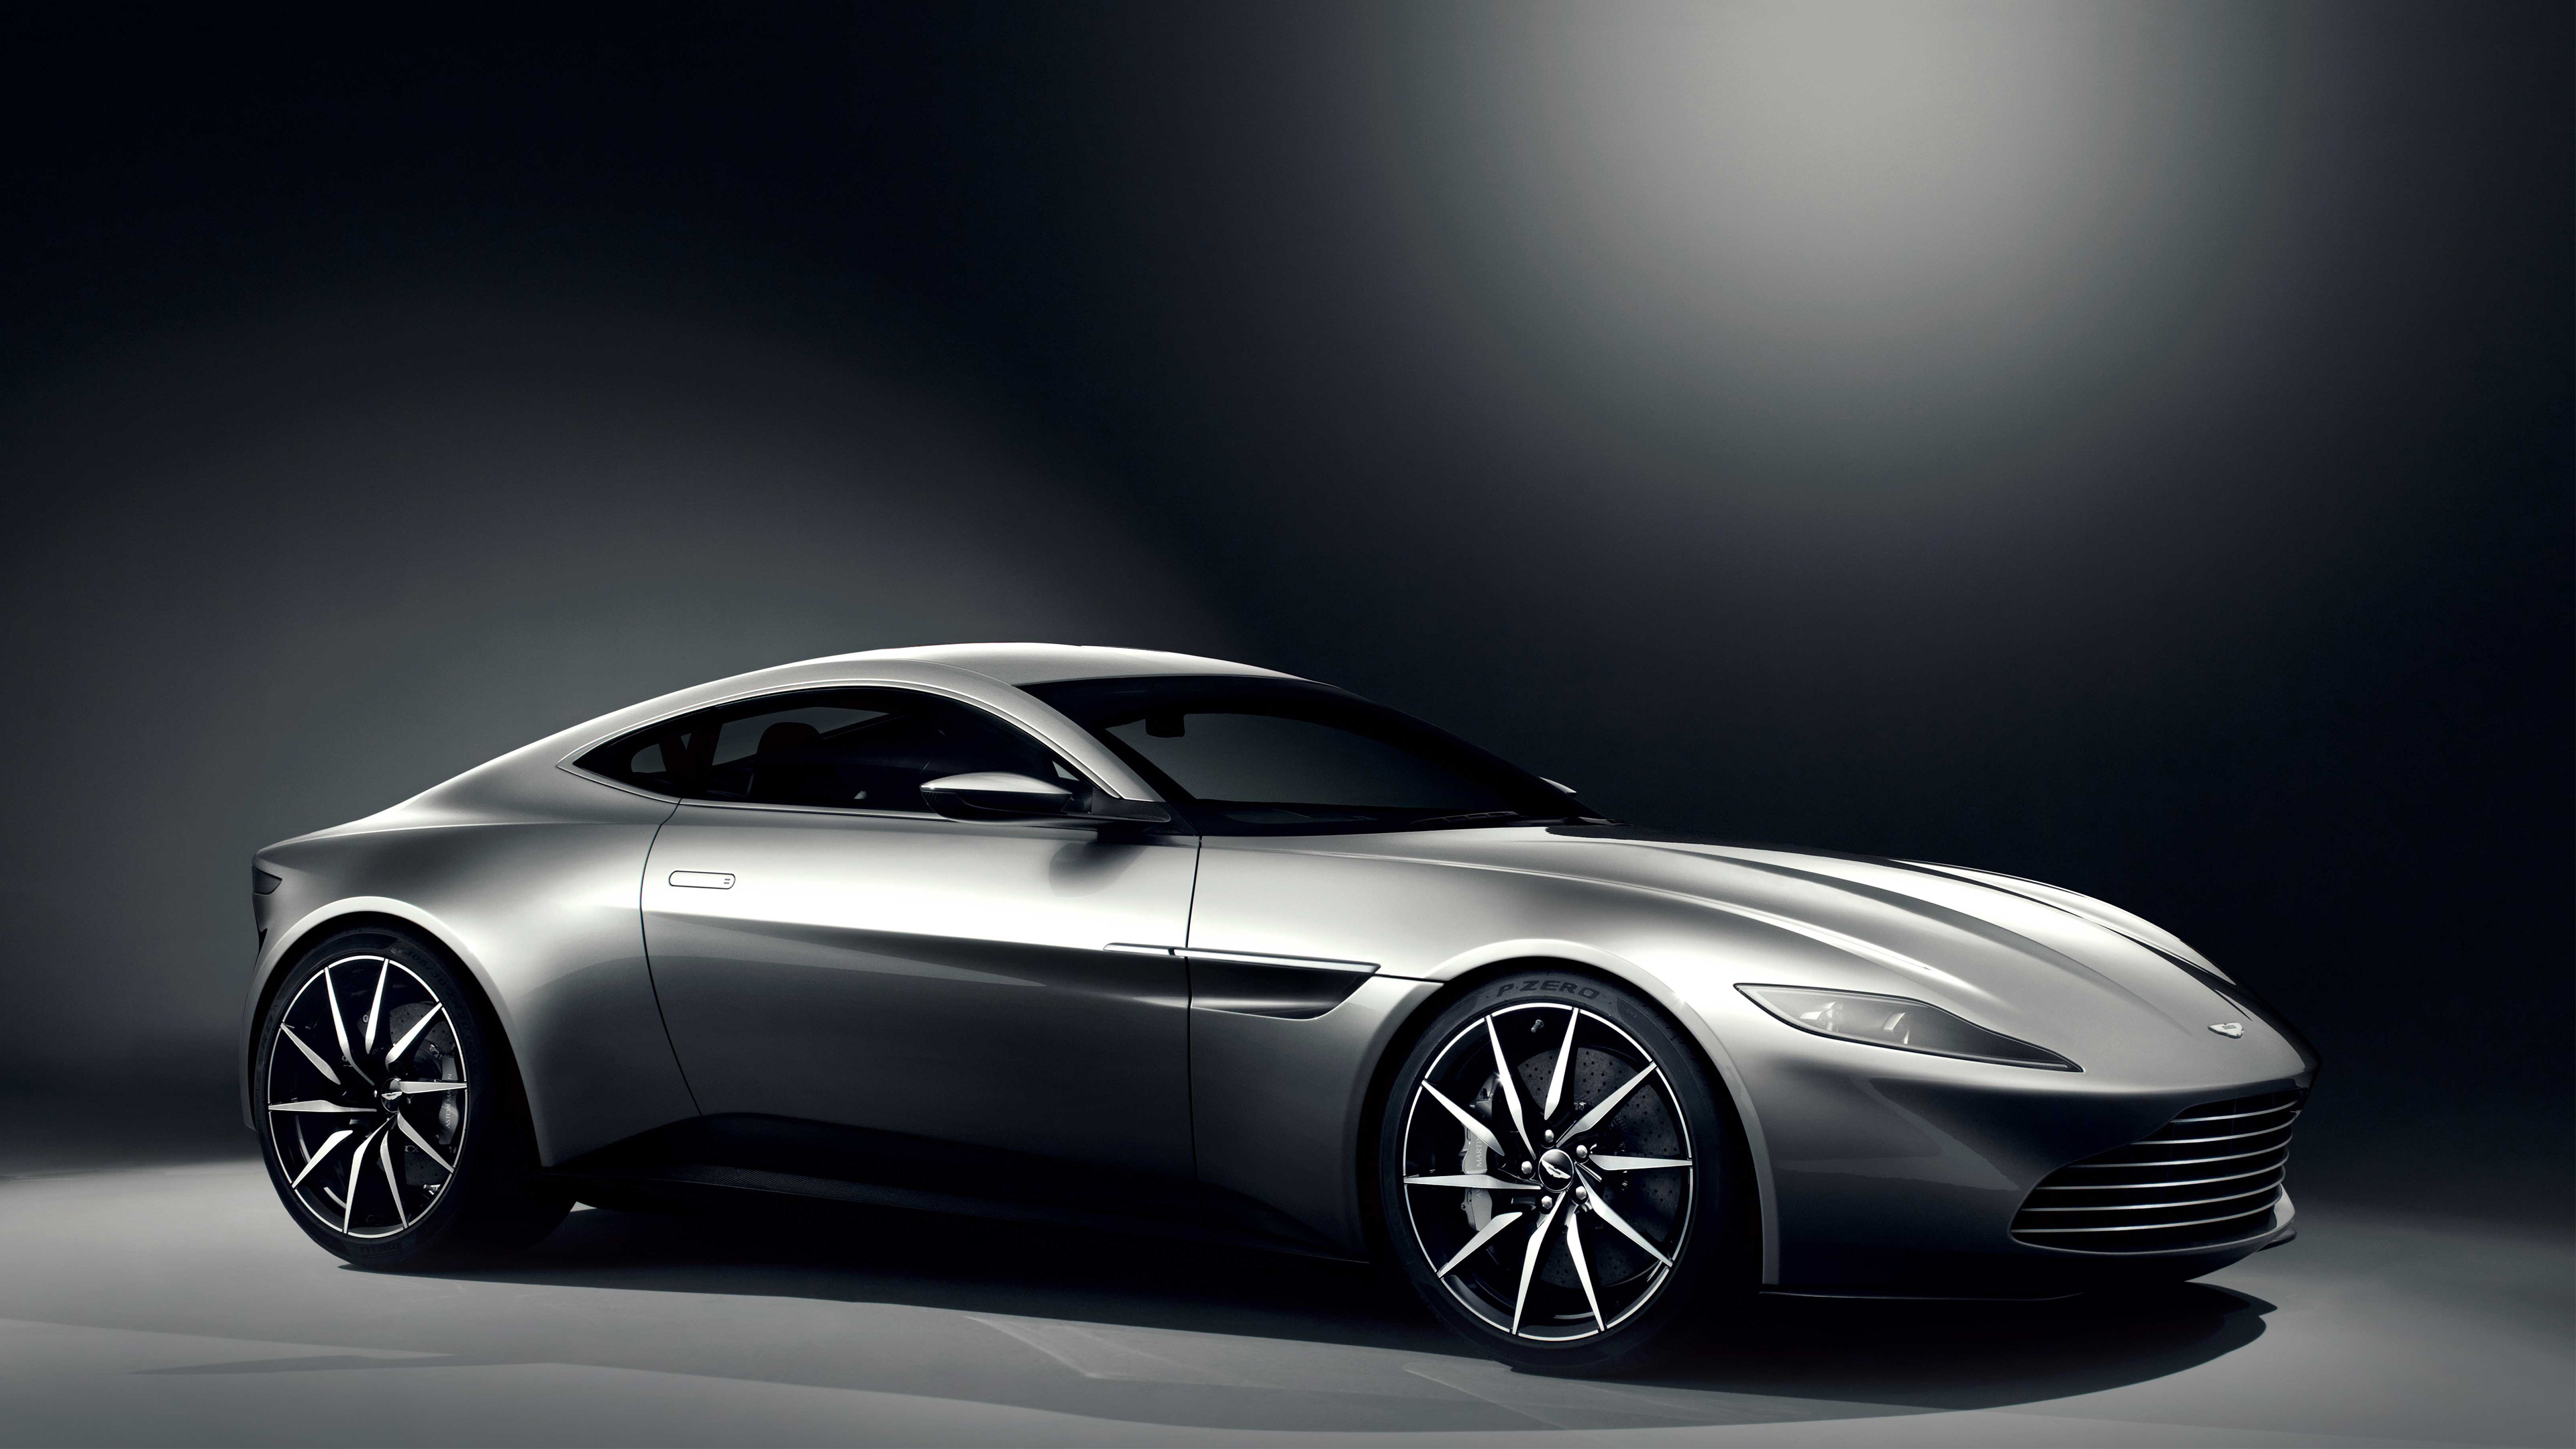 aston martin db10 4k wallpaper | hd car wallpapers | id #6010